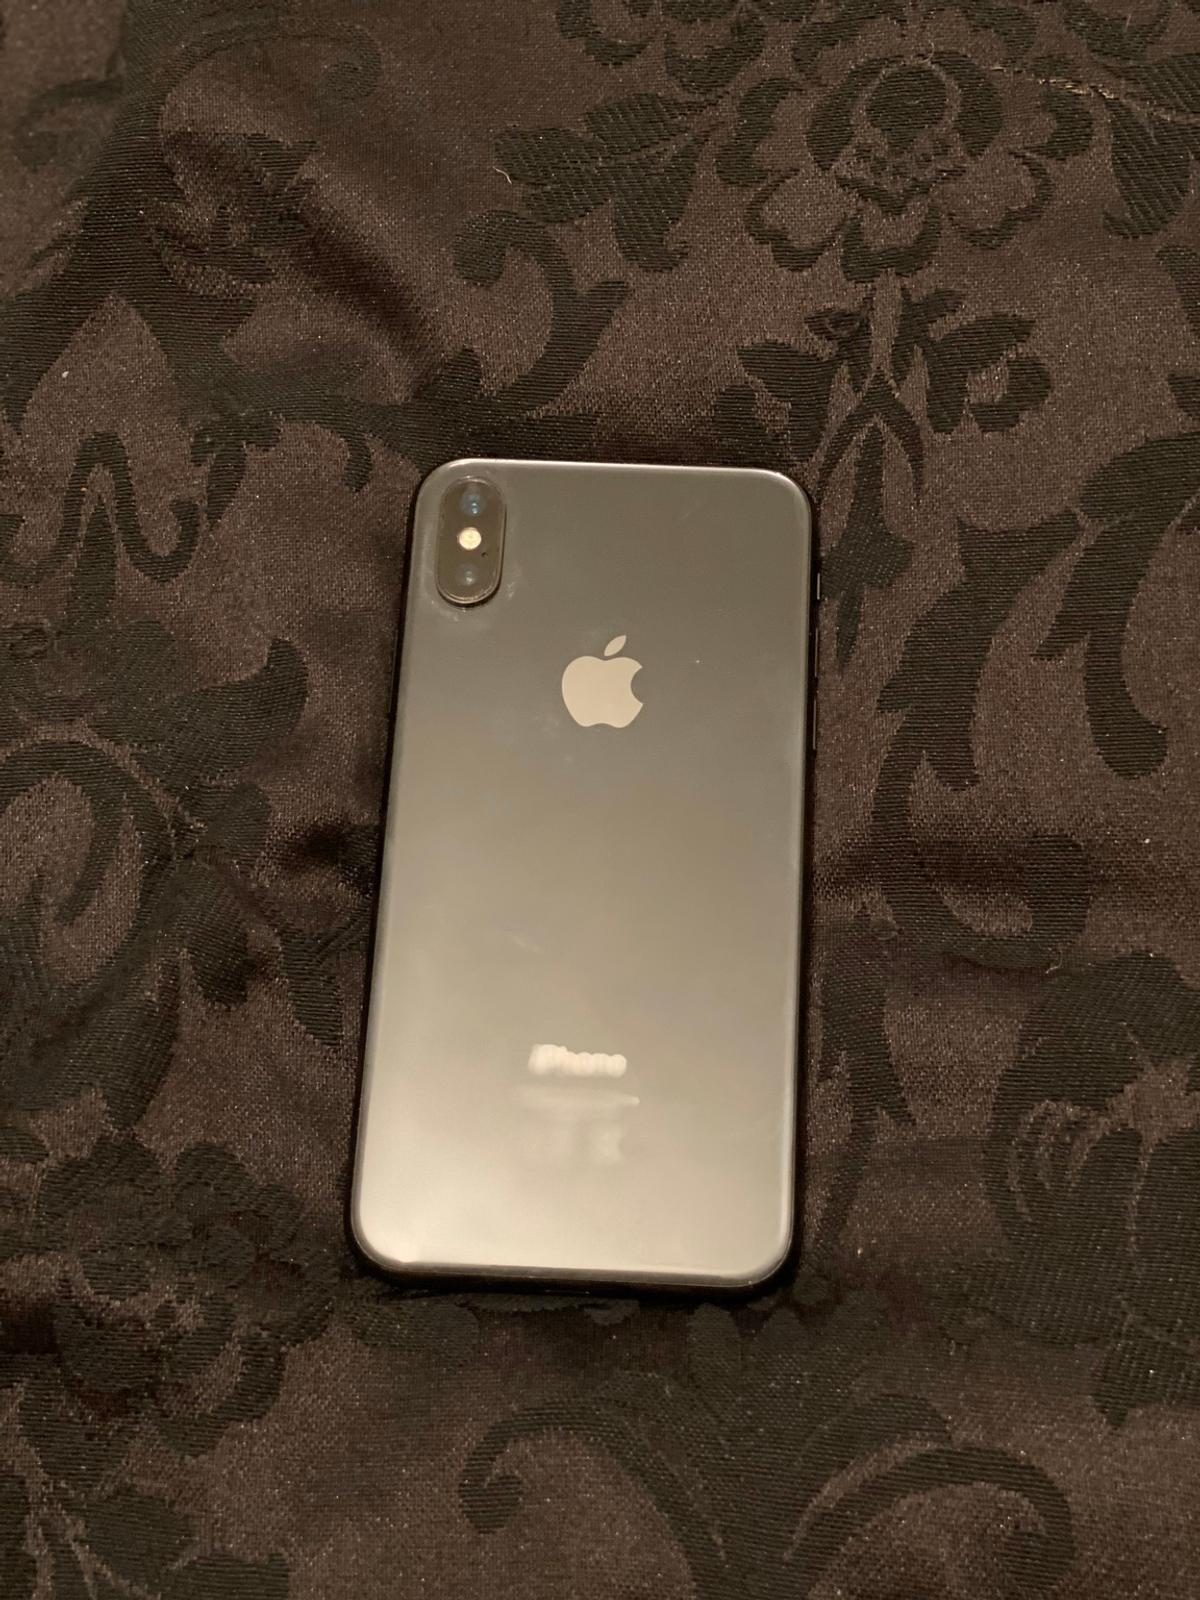 iPhone X for sale No damage and works perfect Selling it as I upgraded EE network